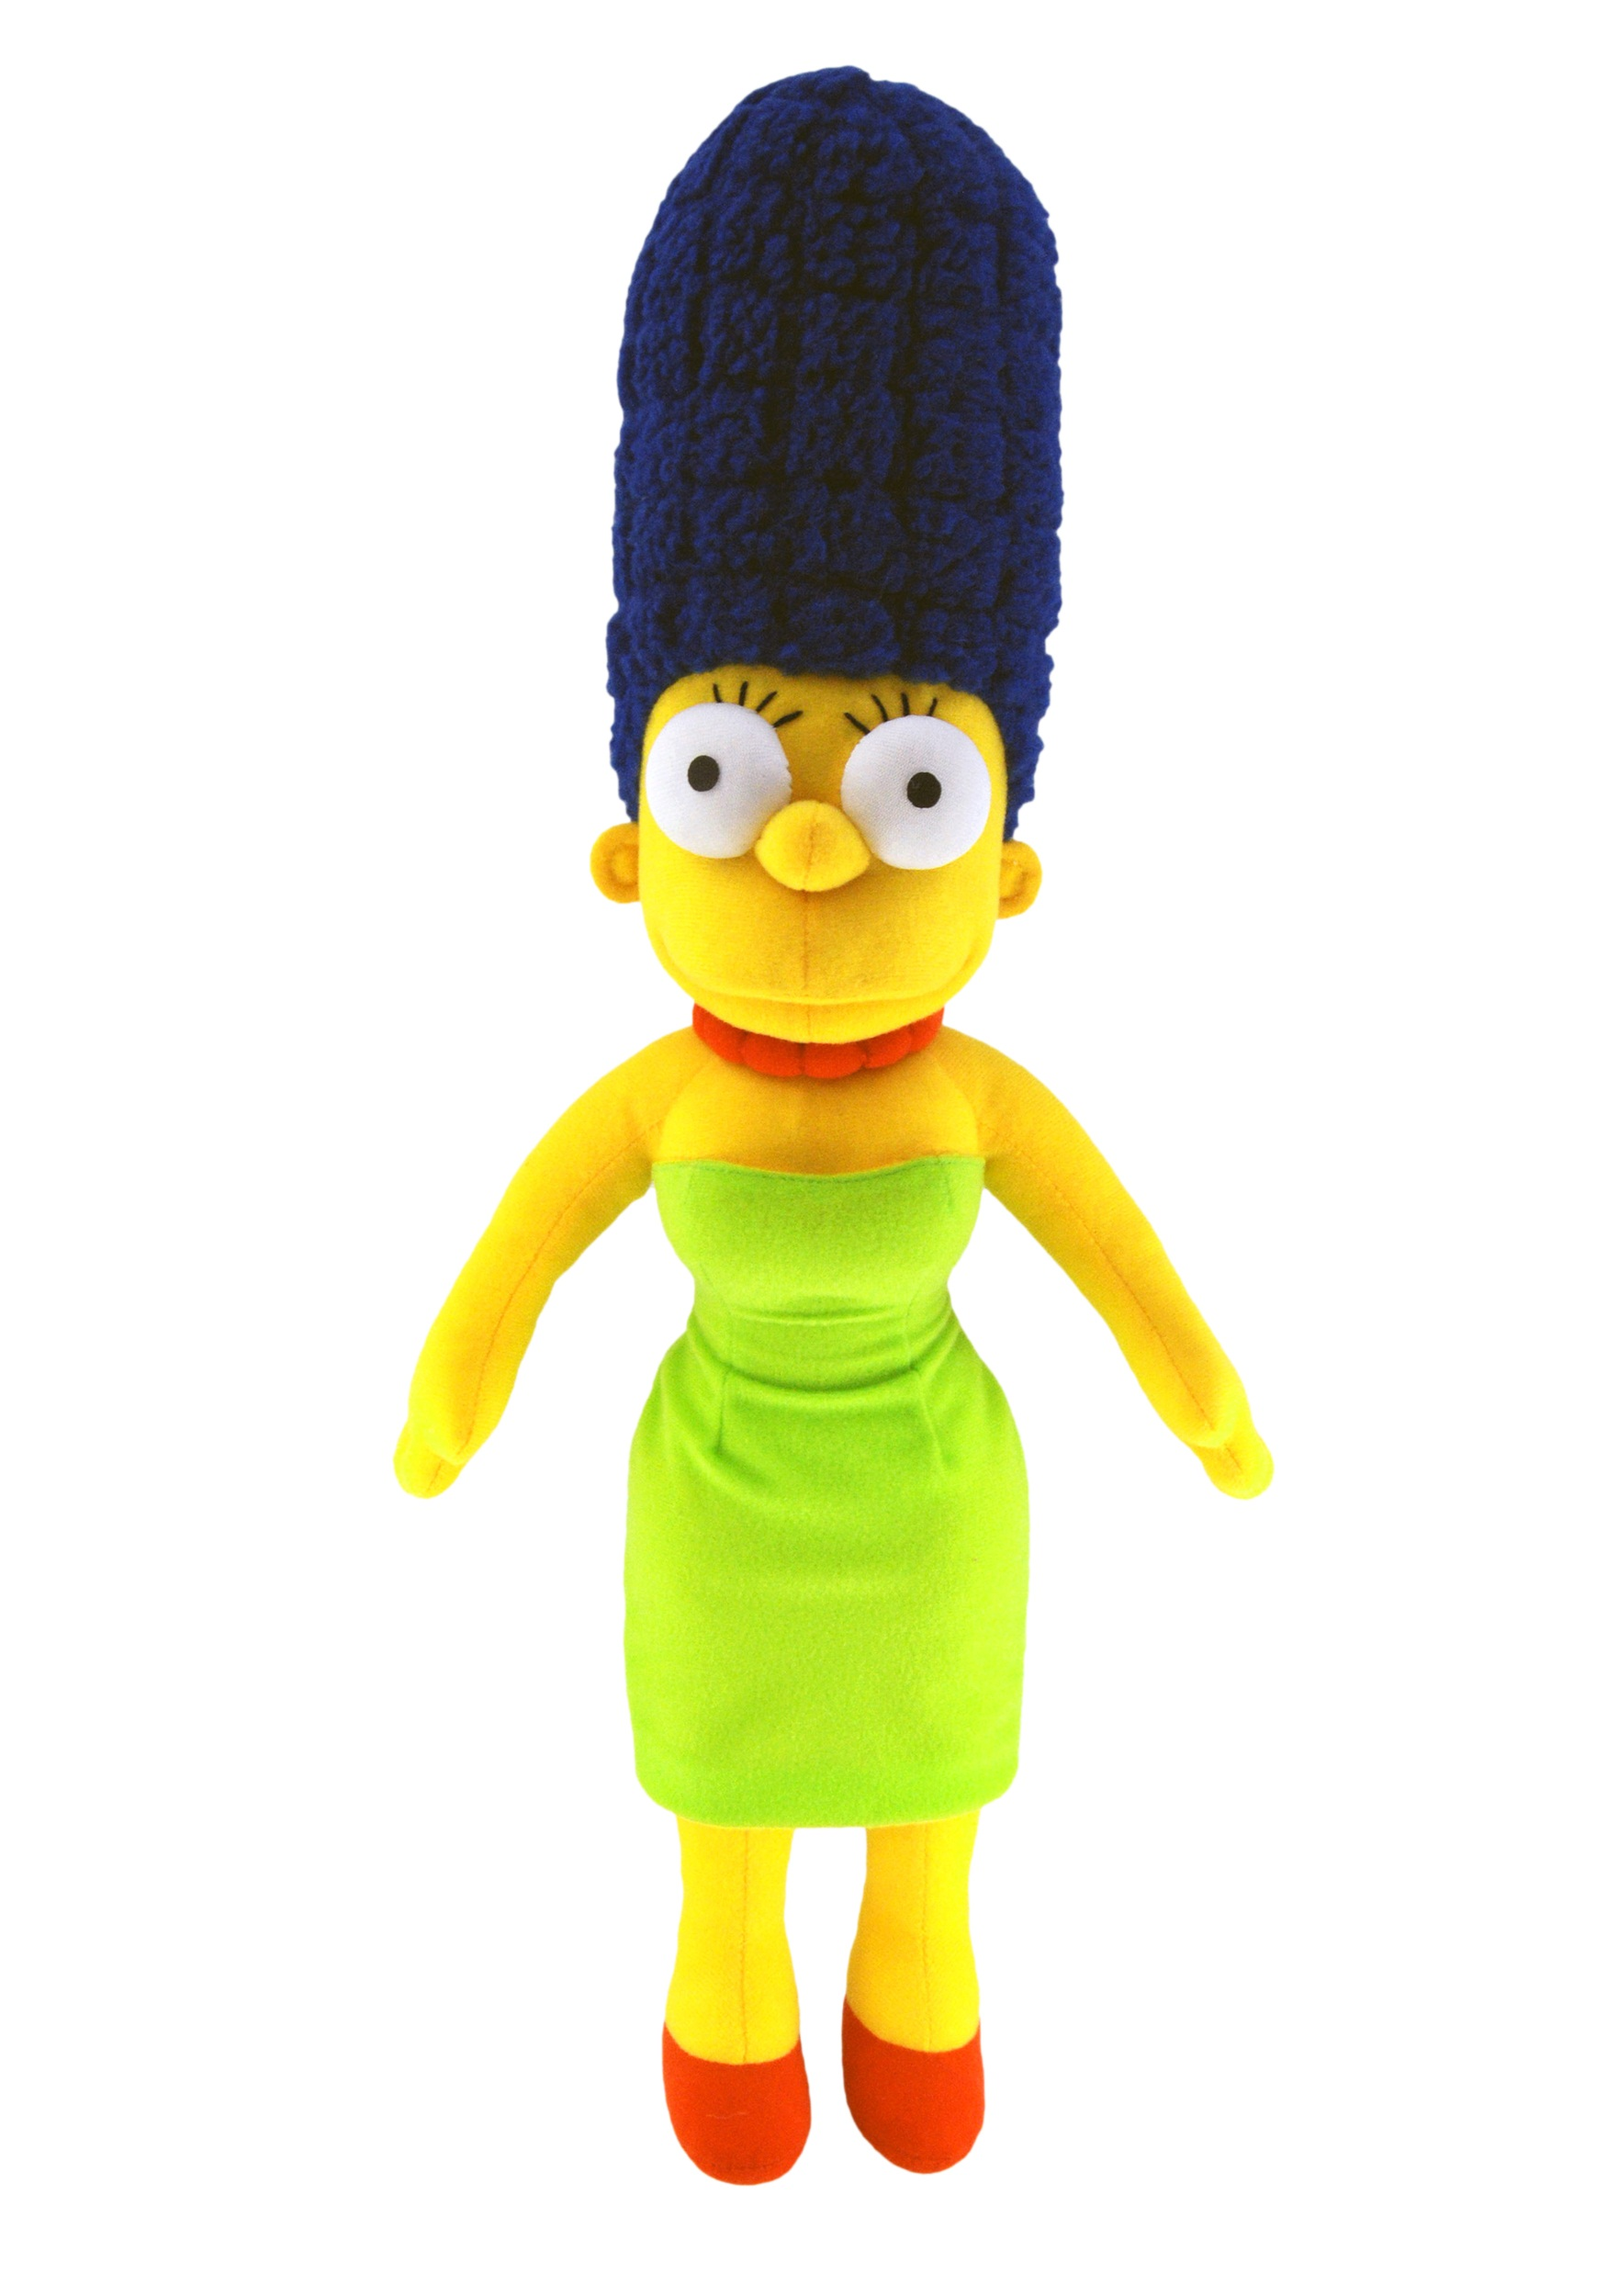 Fun Lamps Marge Simpson Plush